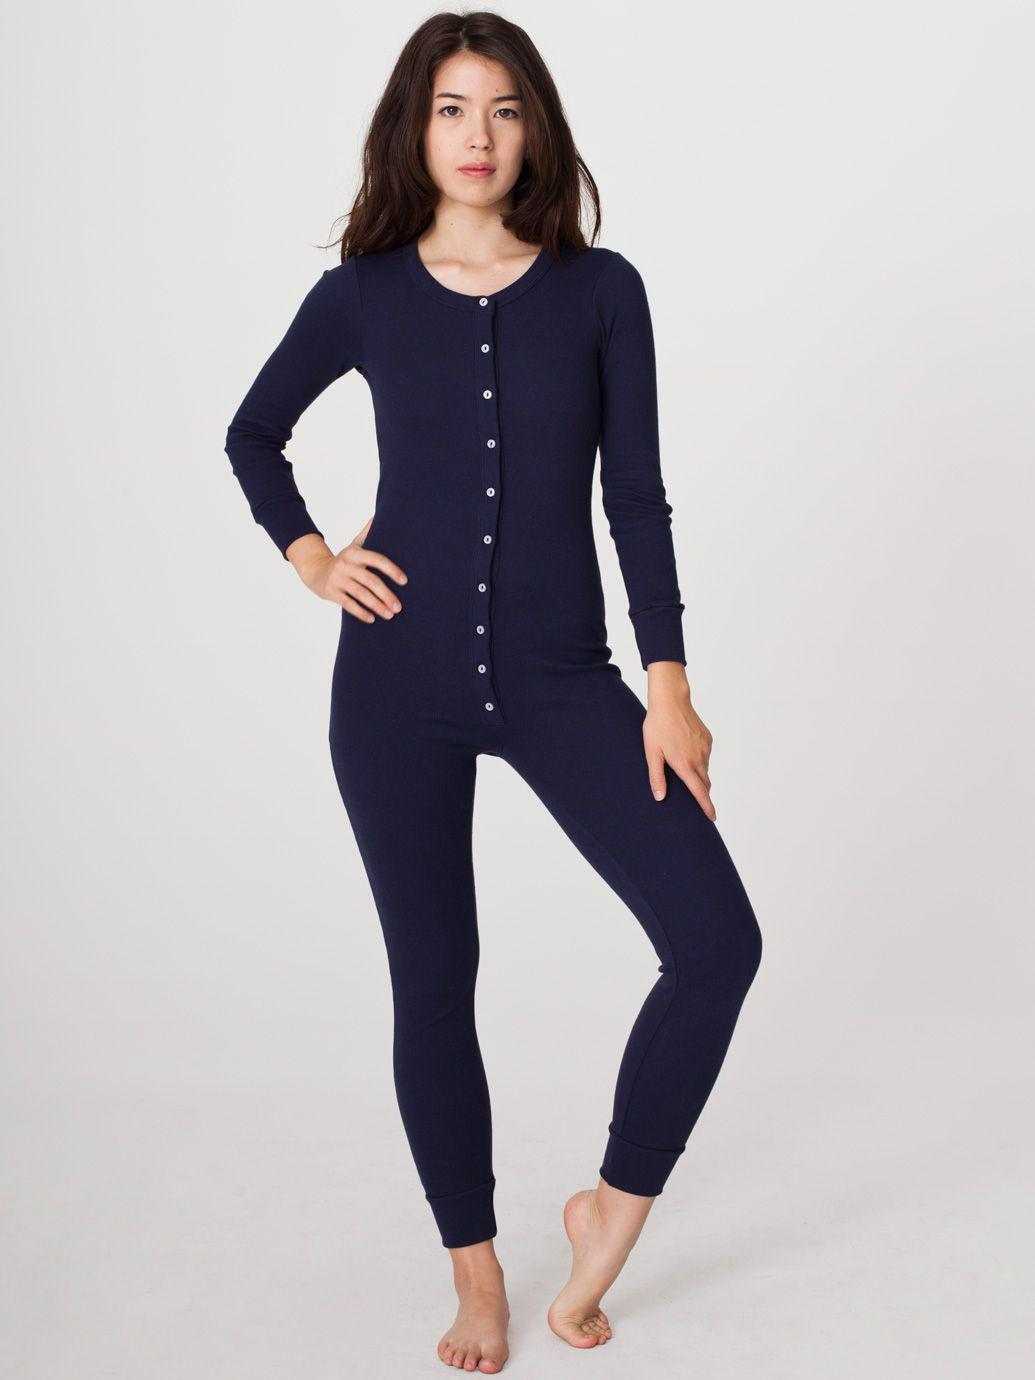 76e1800ffd rsad300w - Unisex Rib Henley One-Piece from American Apparel